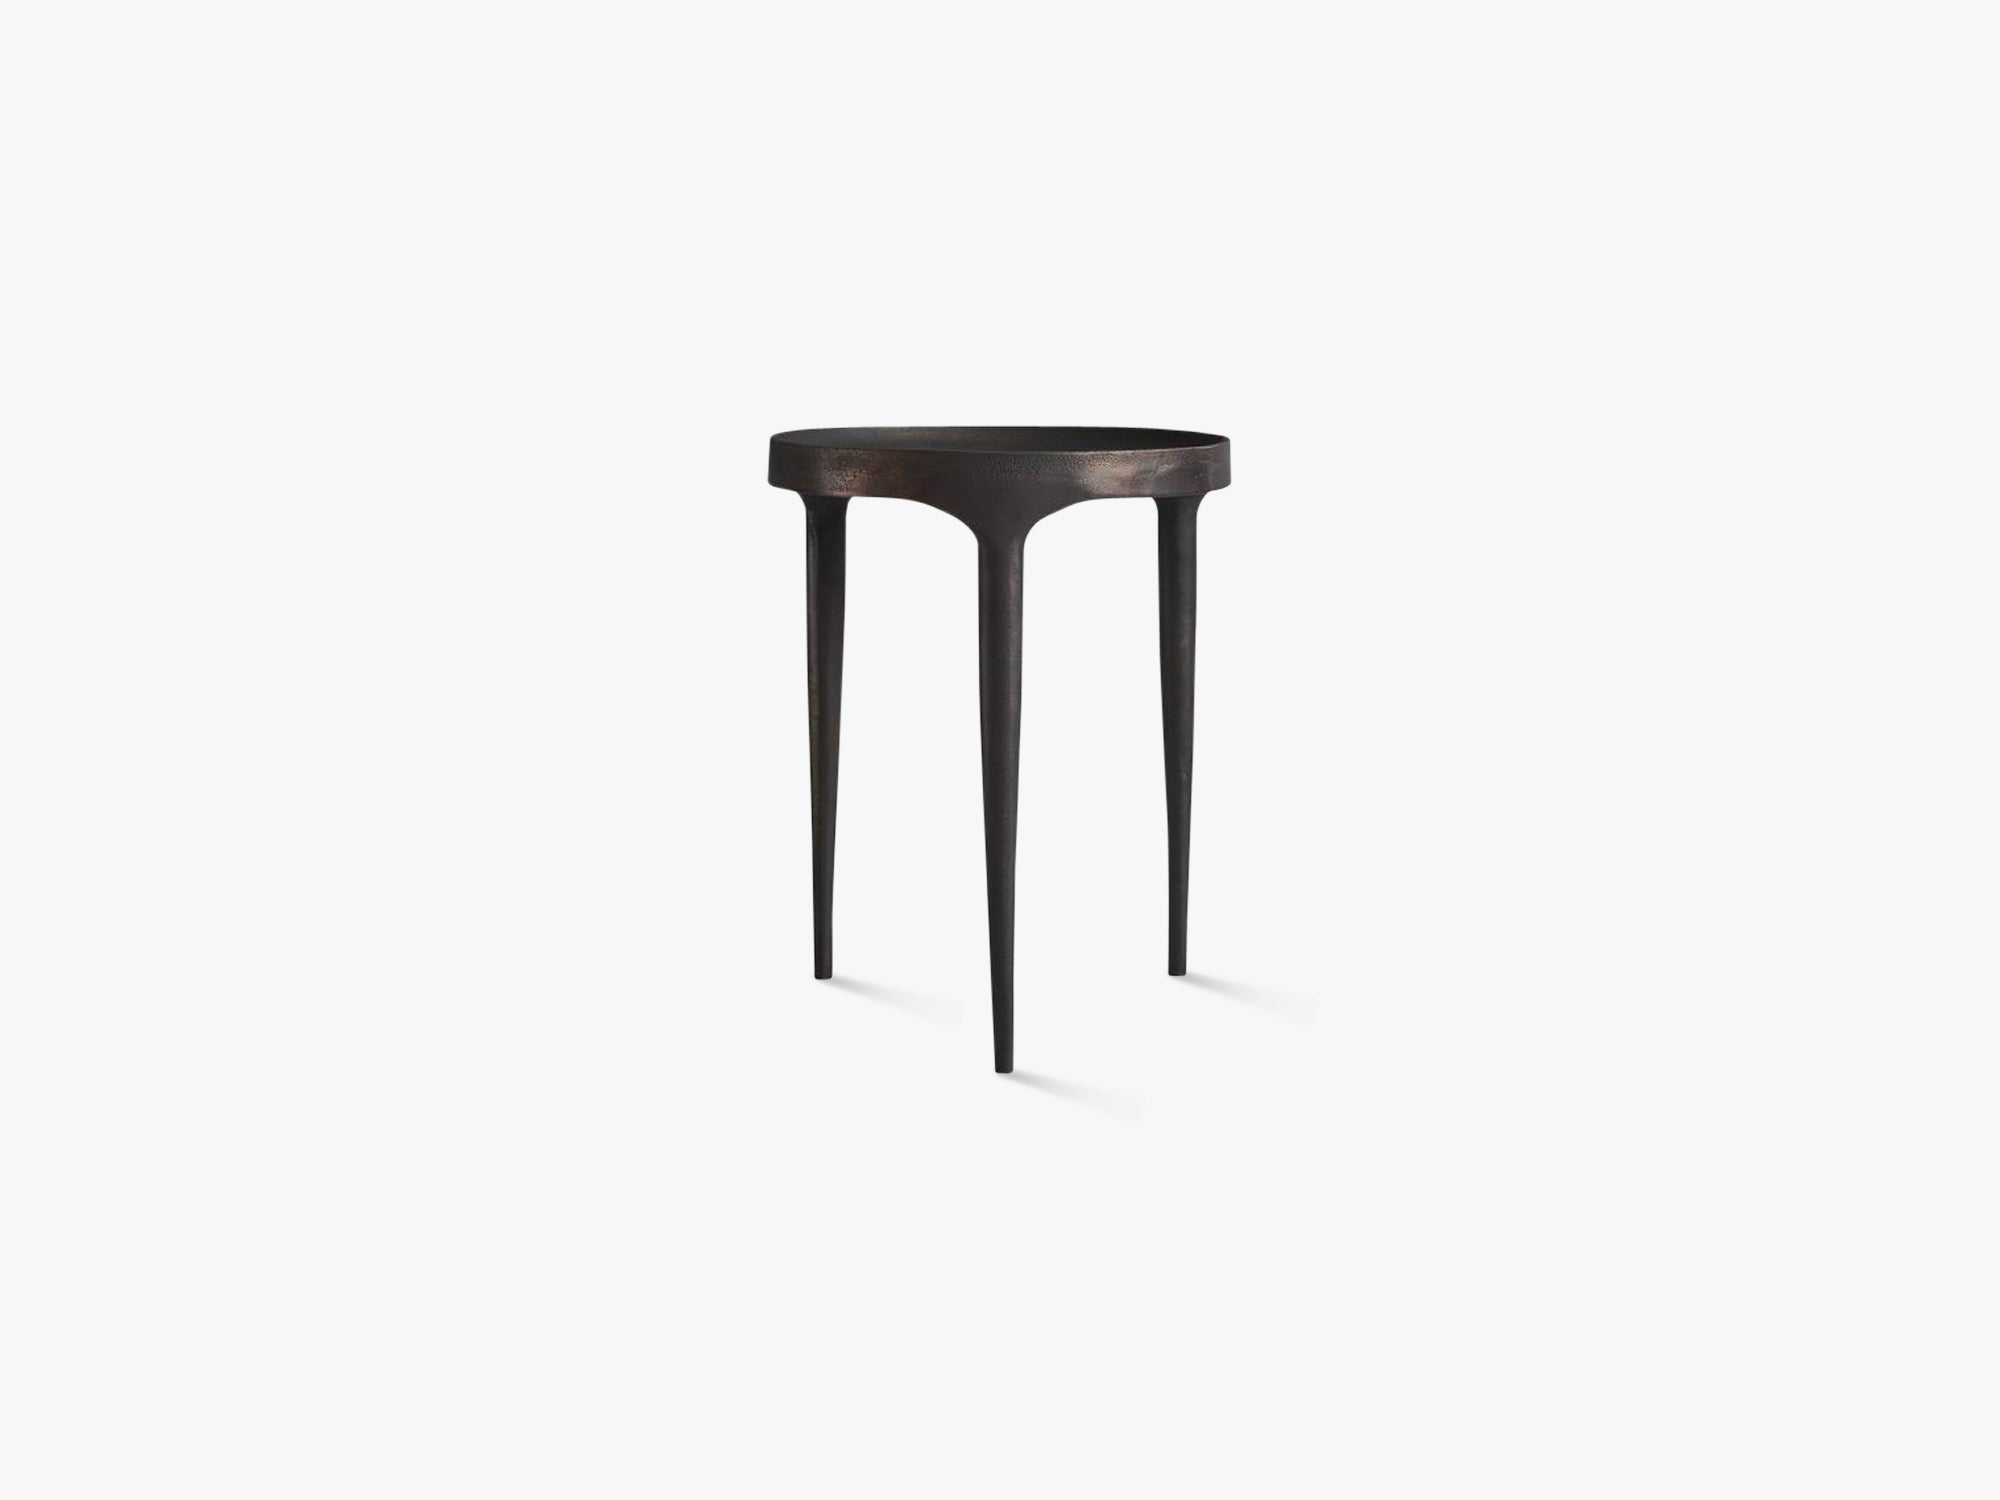 Phantom Table, Tall, Burn Antique fra 101 Copenhagen